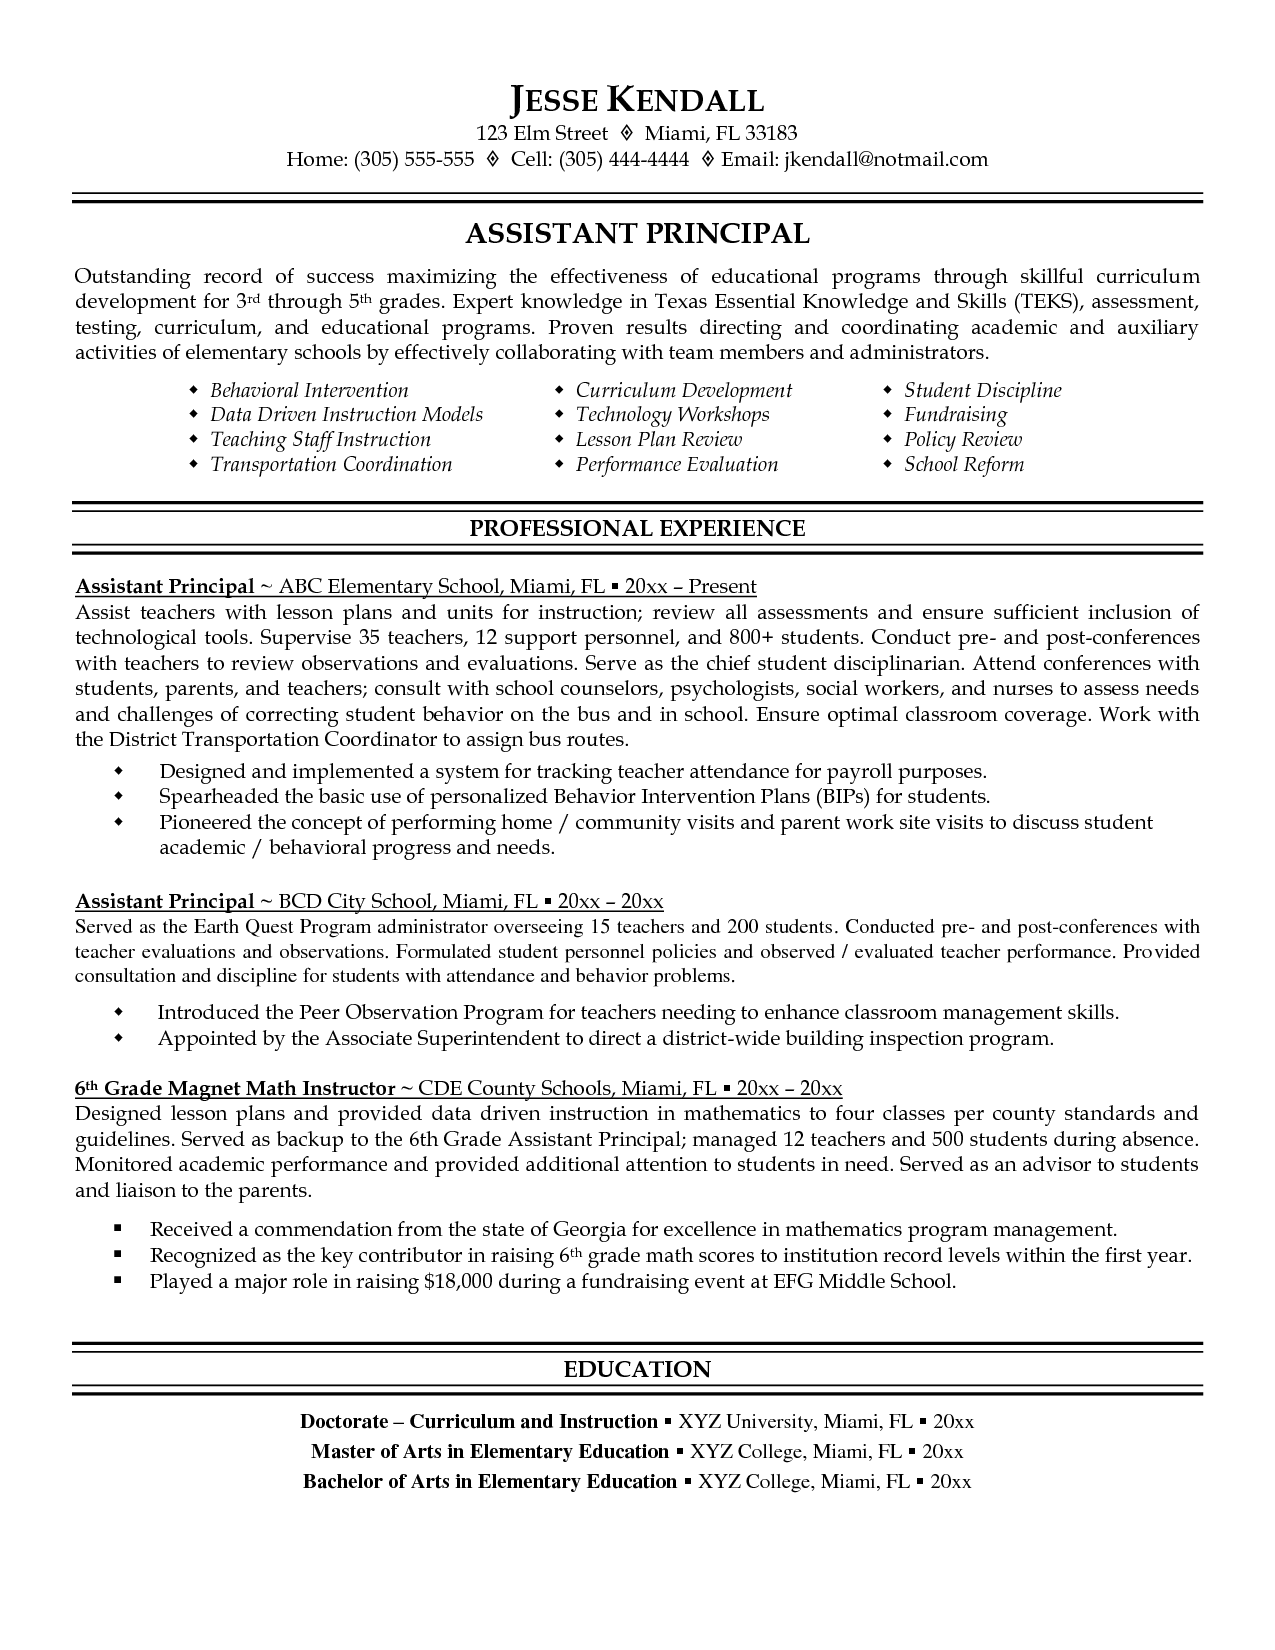 resume and vice principal assistant principal resume sample - Comedian Sample Resume